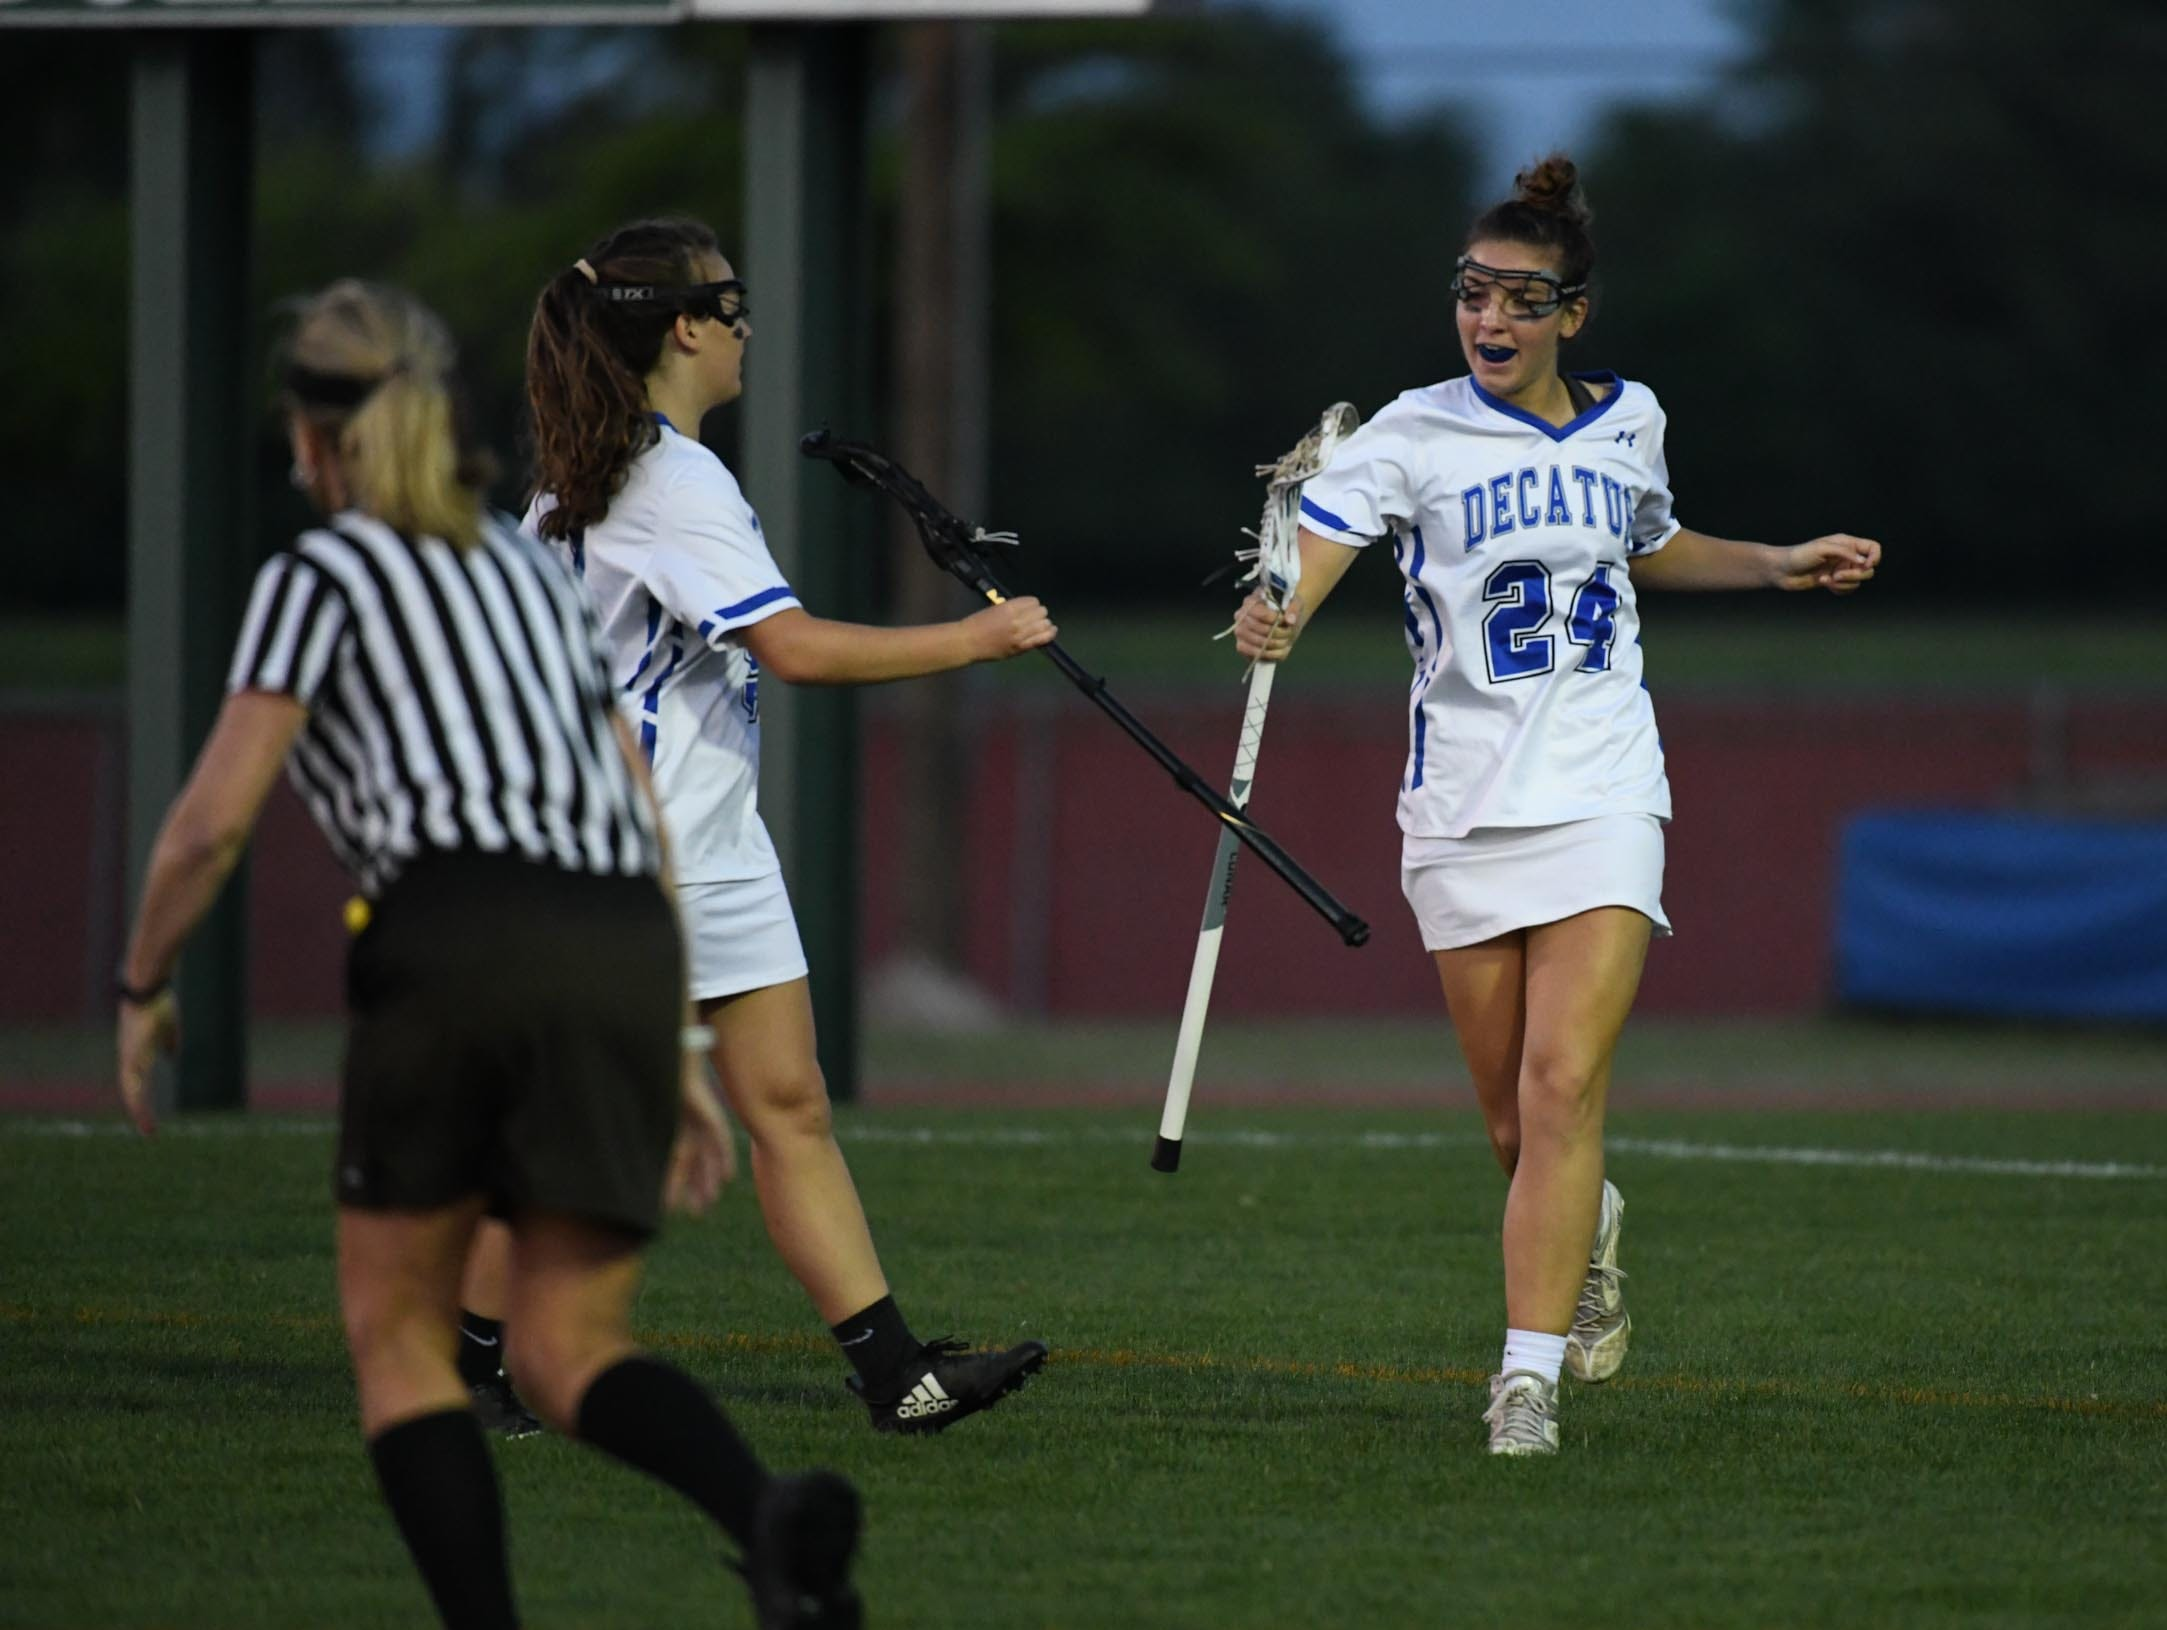 Stephen Decatur's Alyssa Romano celebrates after a goal against Kent Island during the Bayside Championship on Monday, May 6, 2019 at Wicomico County Stadium in Salisbury, Md.